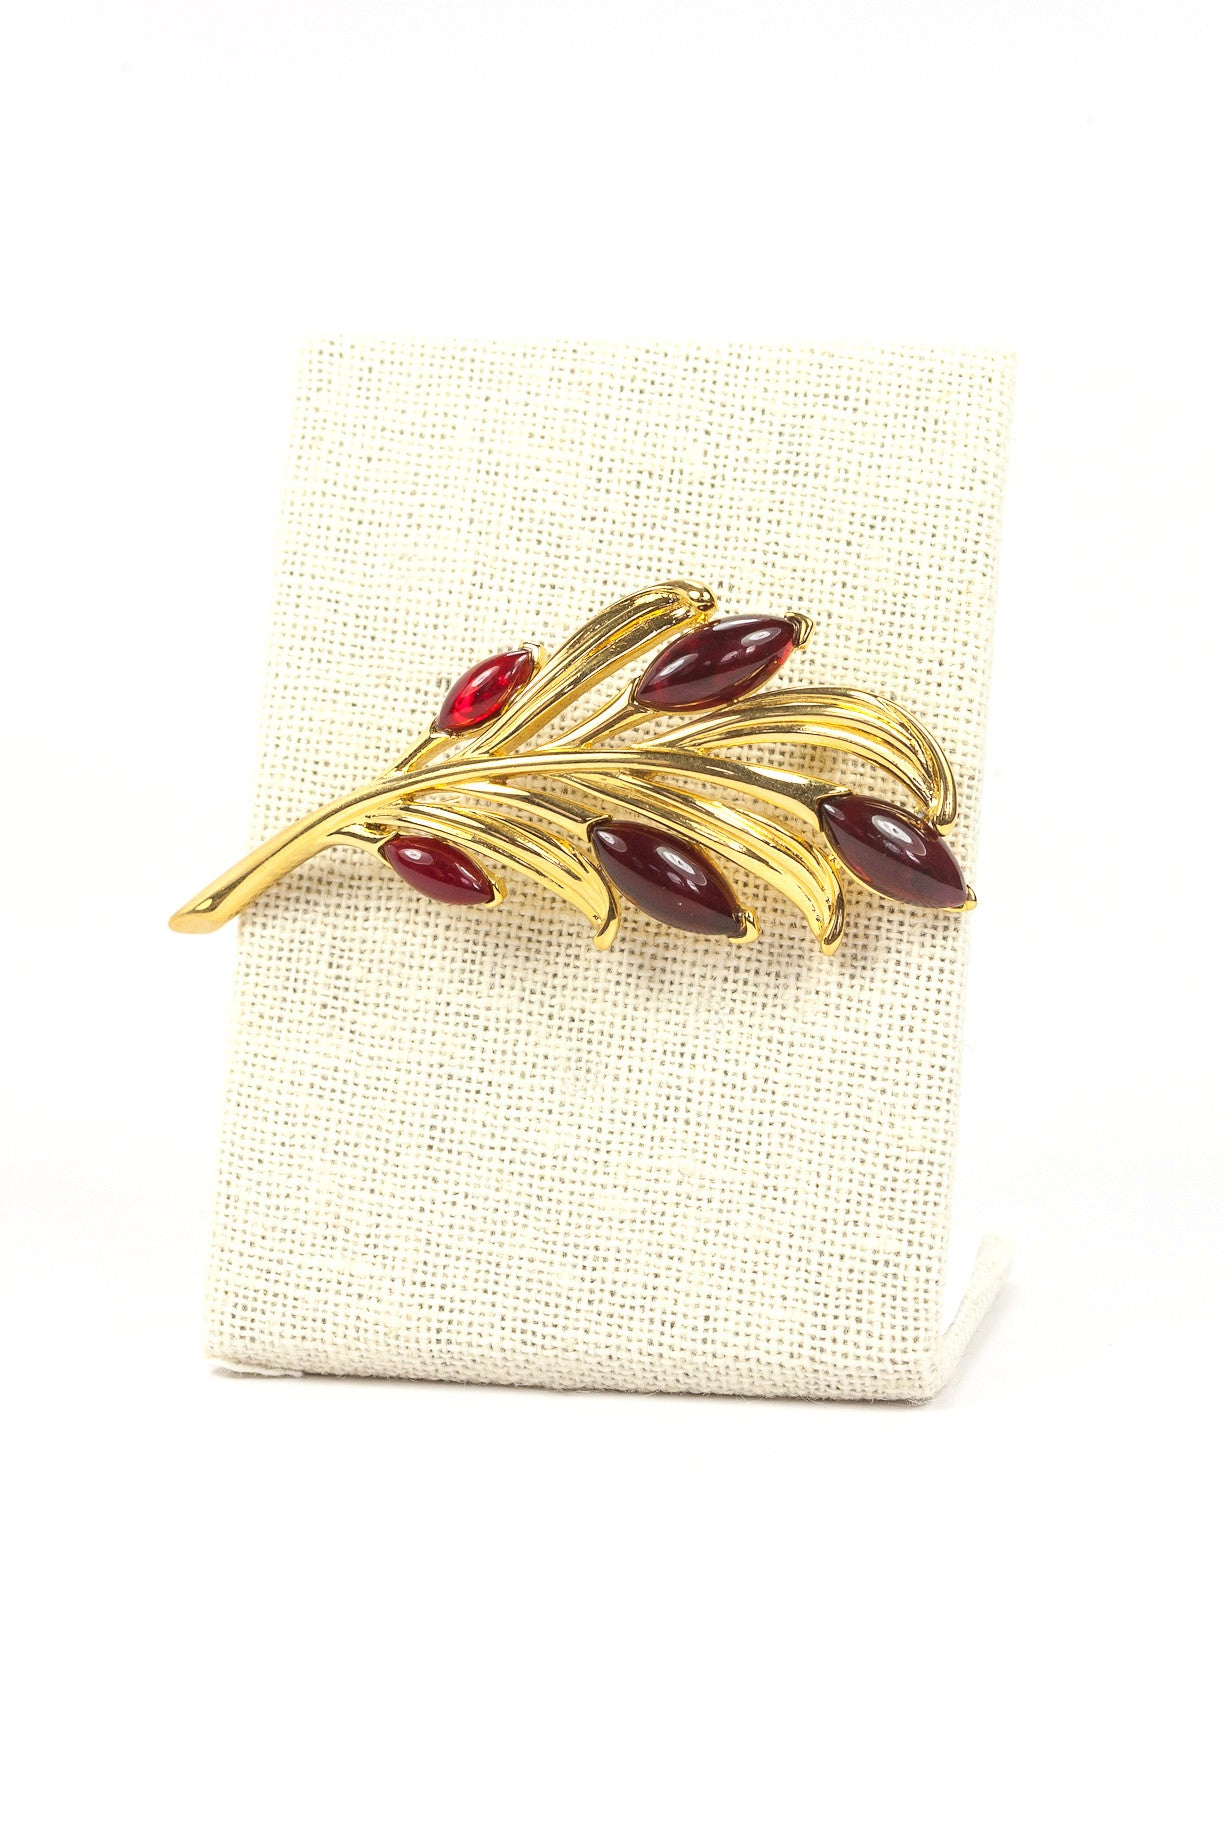 90's__Trifari__Red Feather Brooch